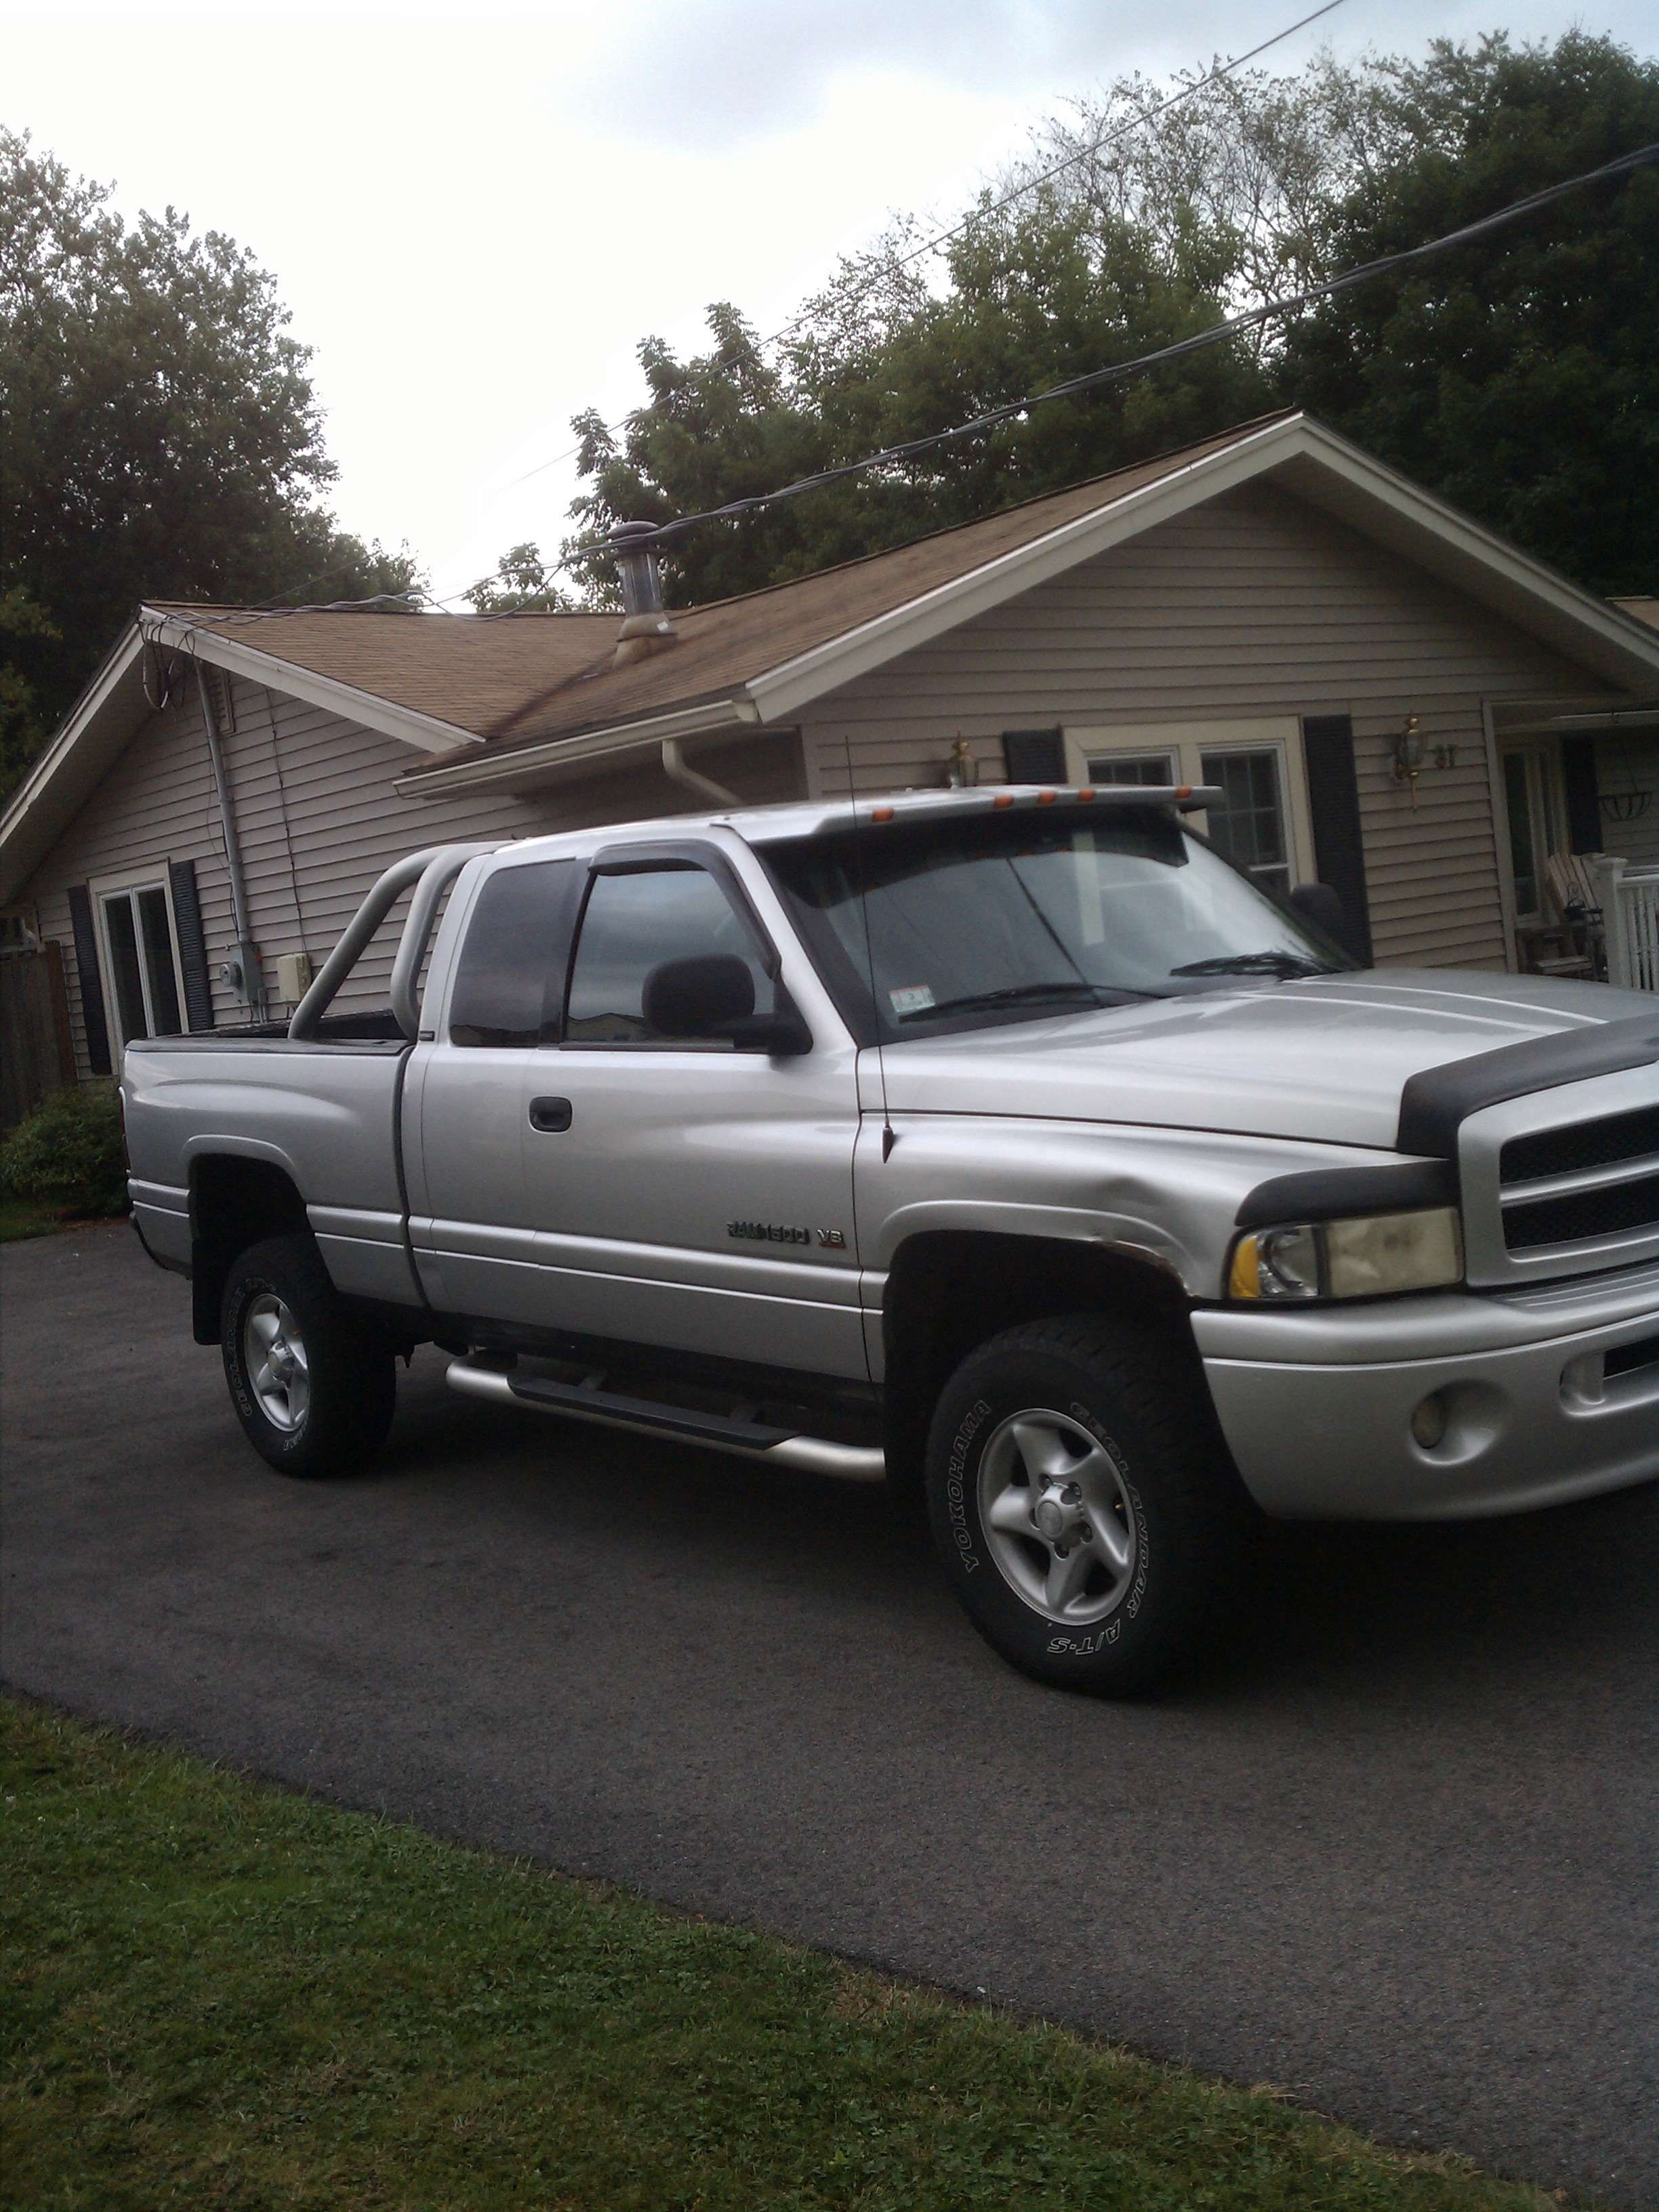 medium resolution of make dodge model ram 1500 truck year 2001 body style extended cab